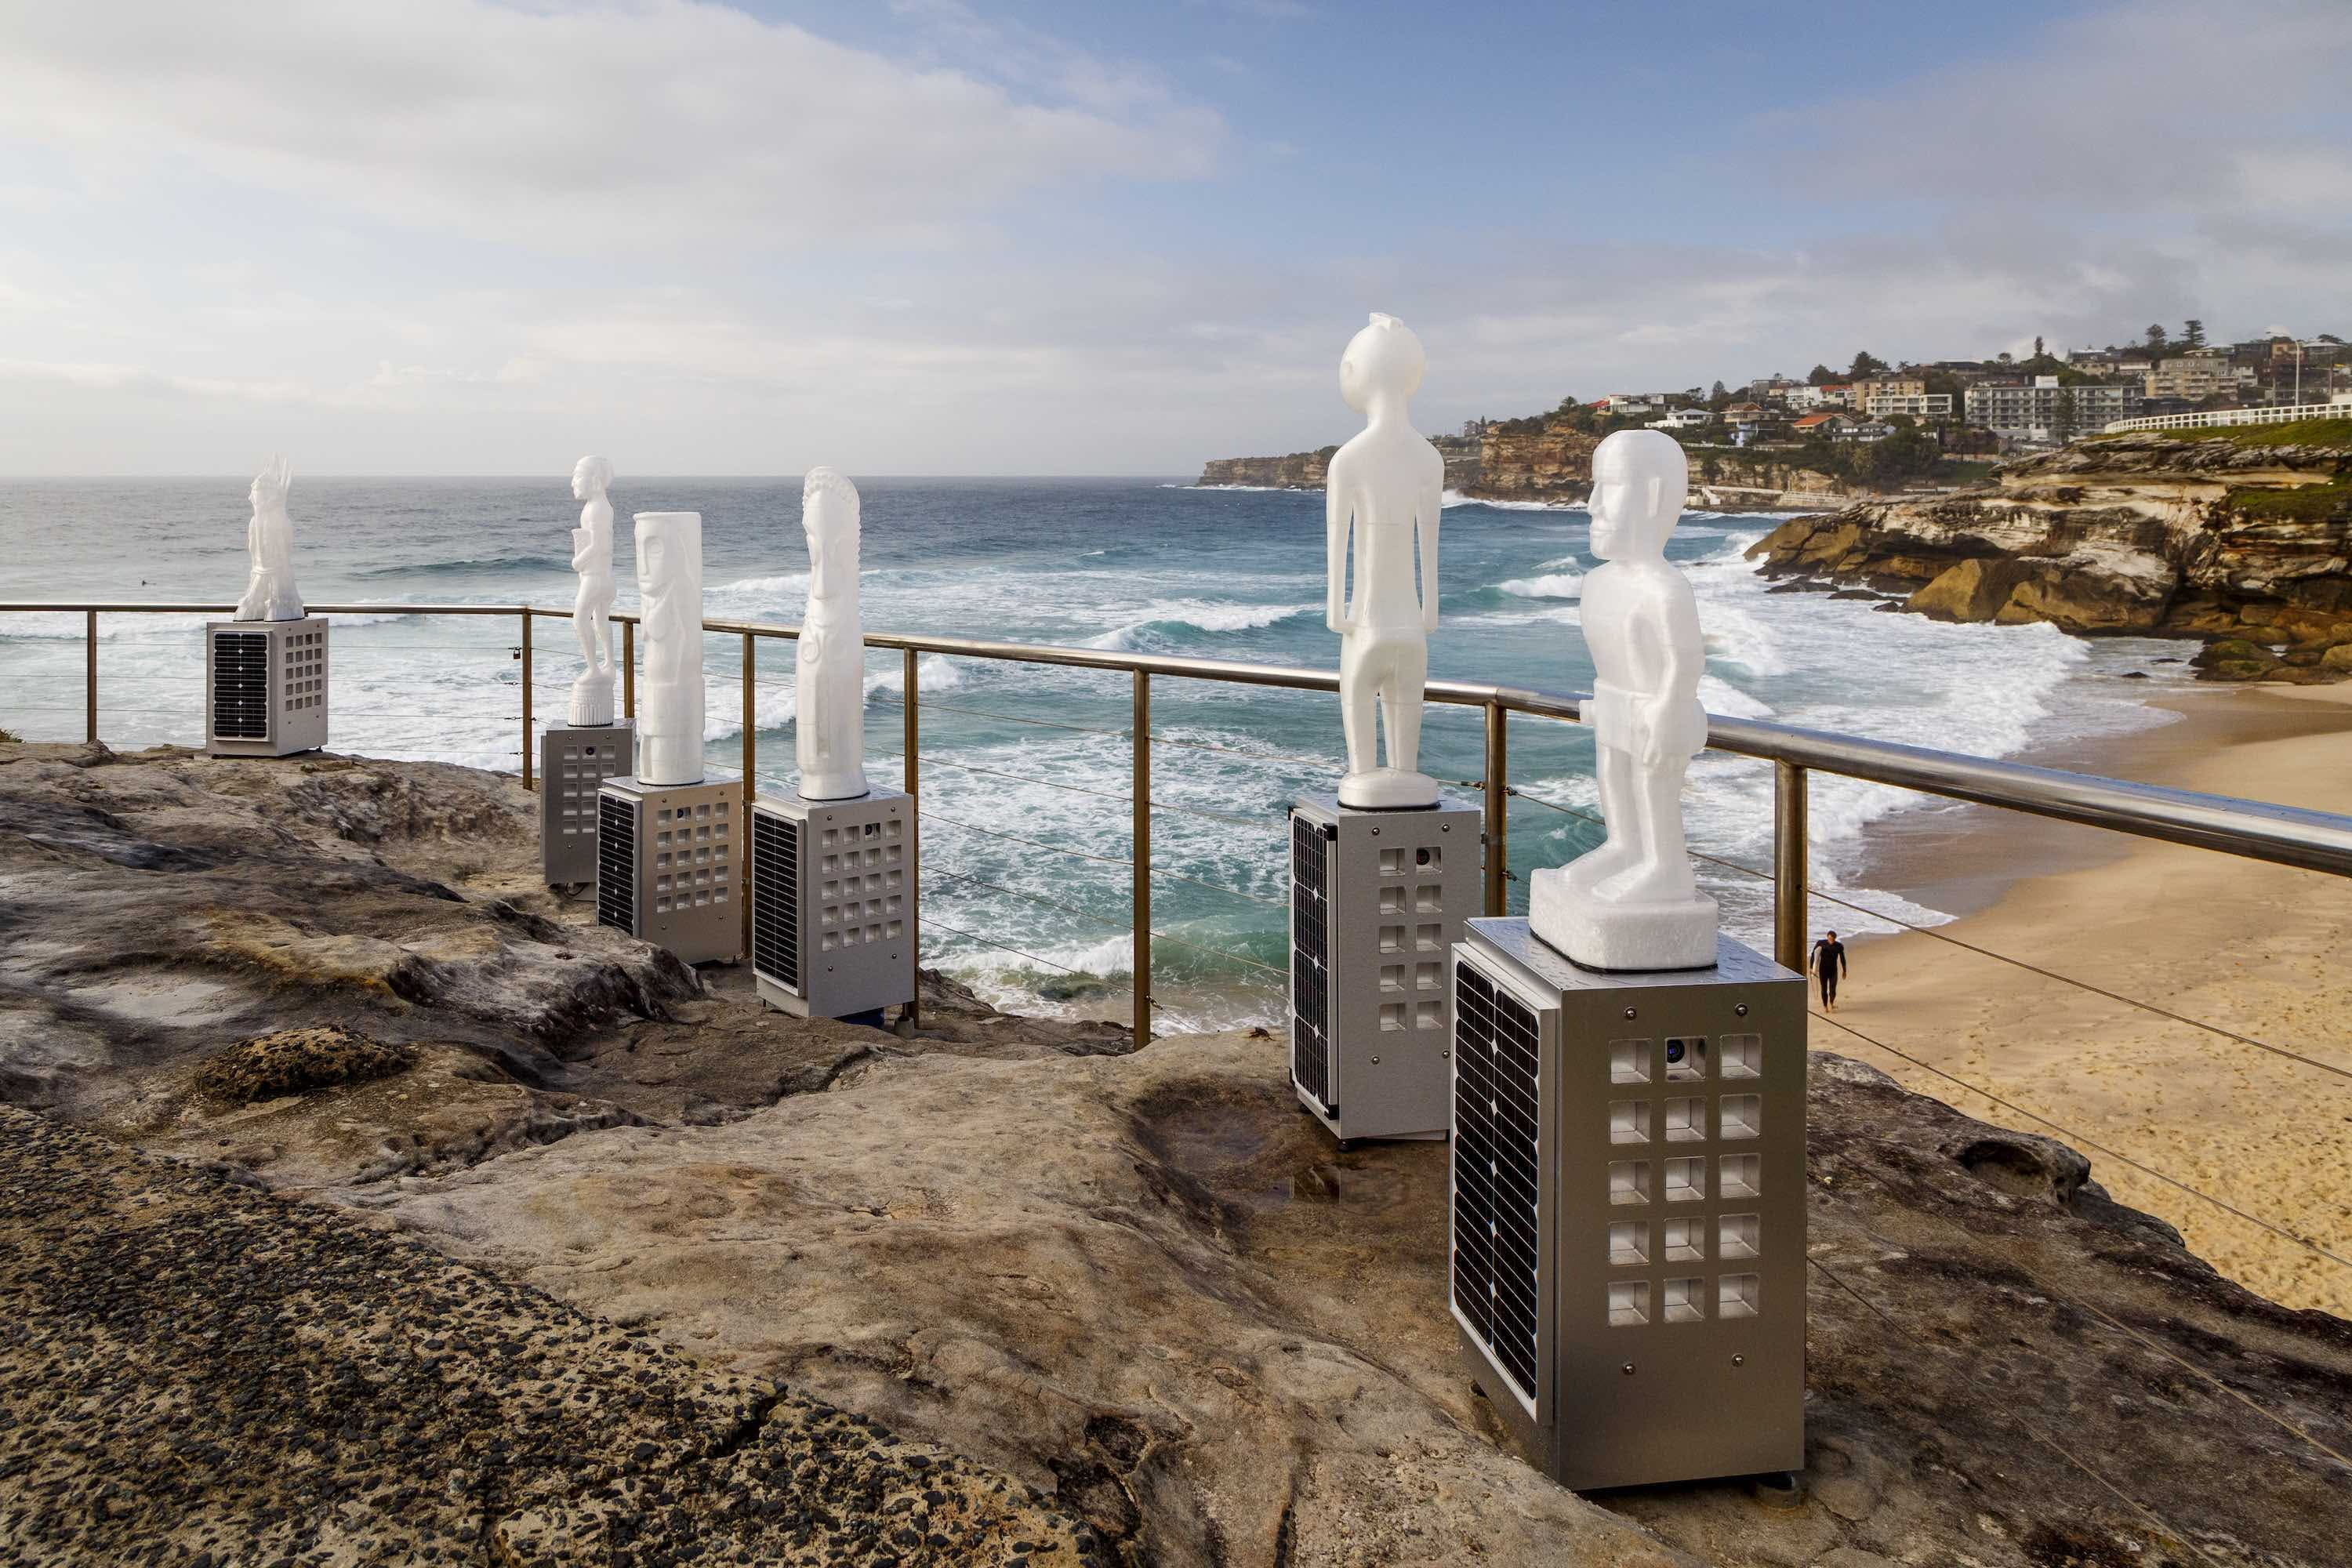 Jeremy Sheehan created a selection of works for the display at Bondi Beach. Image by Jessica Wyld